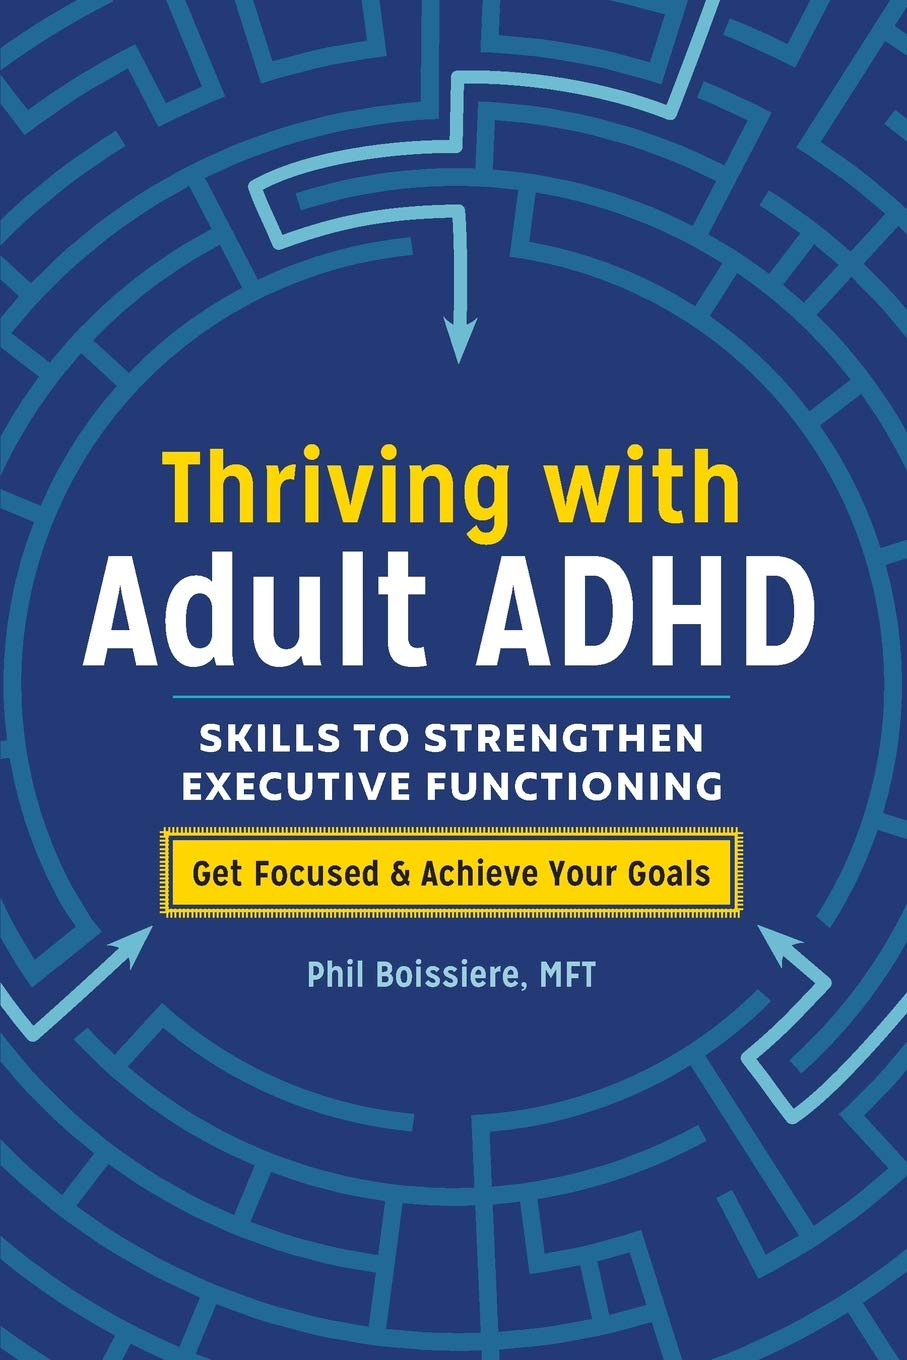 Thriving with Adult ADHD by Phil Boissiere, MFT